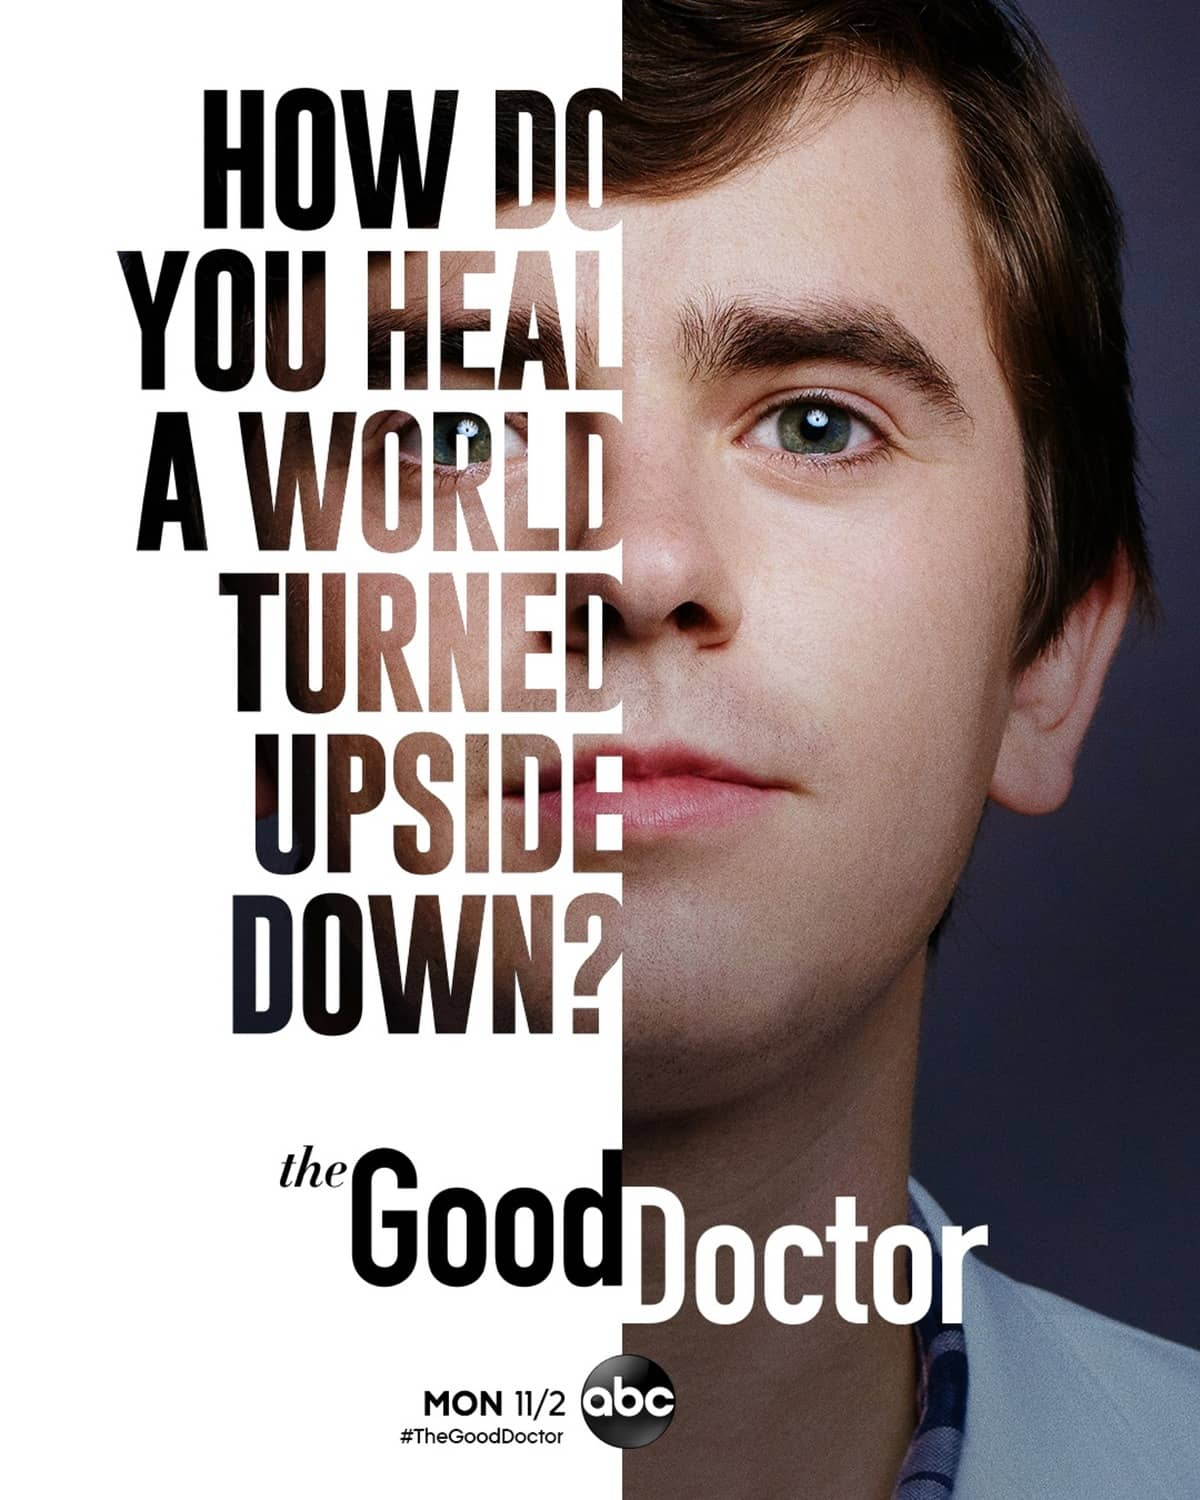 The Good Doctor Season 4 Poster Key Art